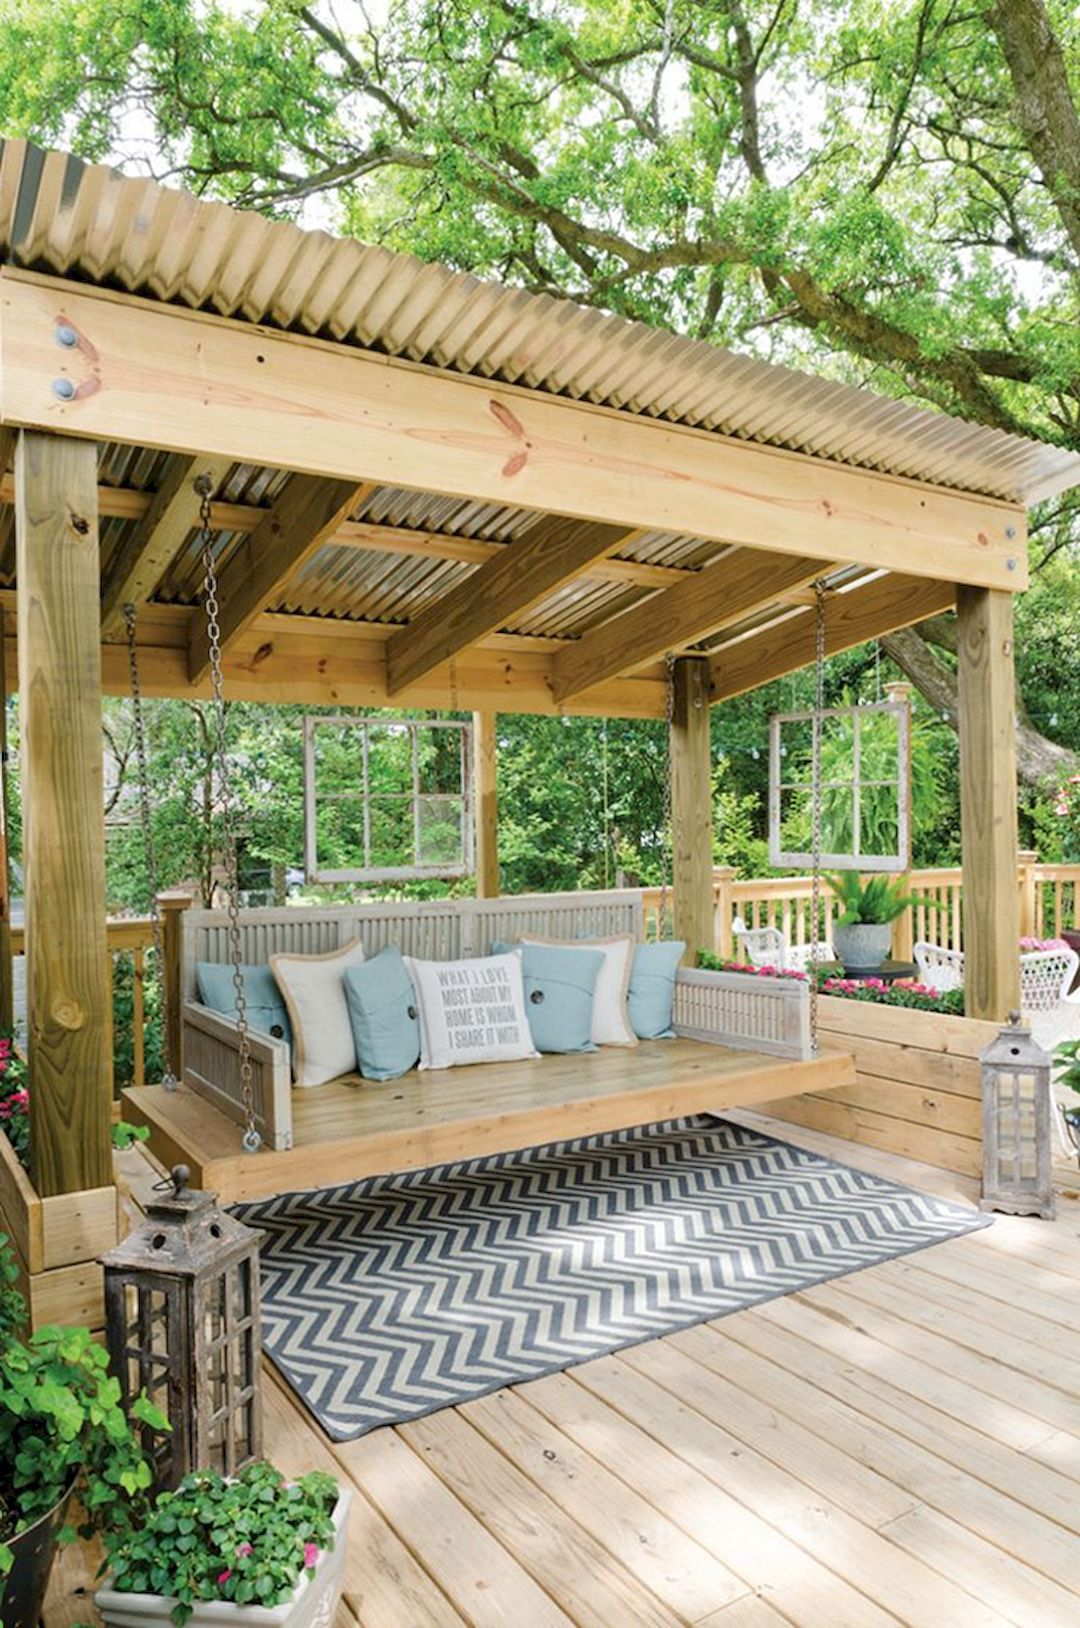 4 Tips To Start Building a Backyard Deck | Pinterest